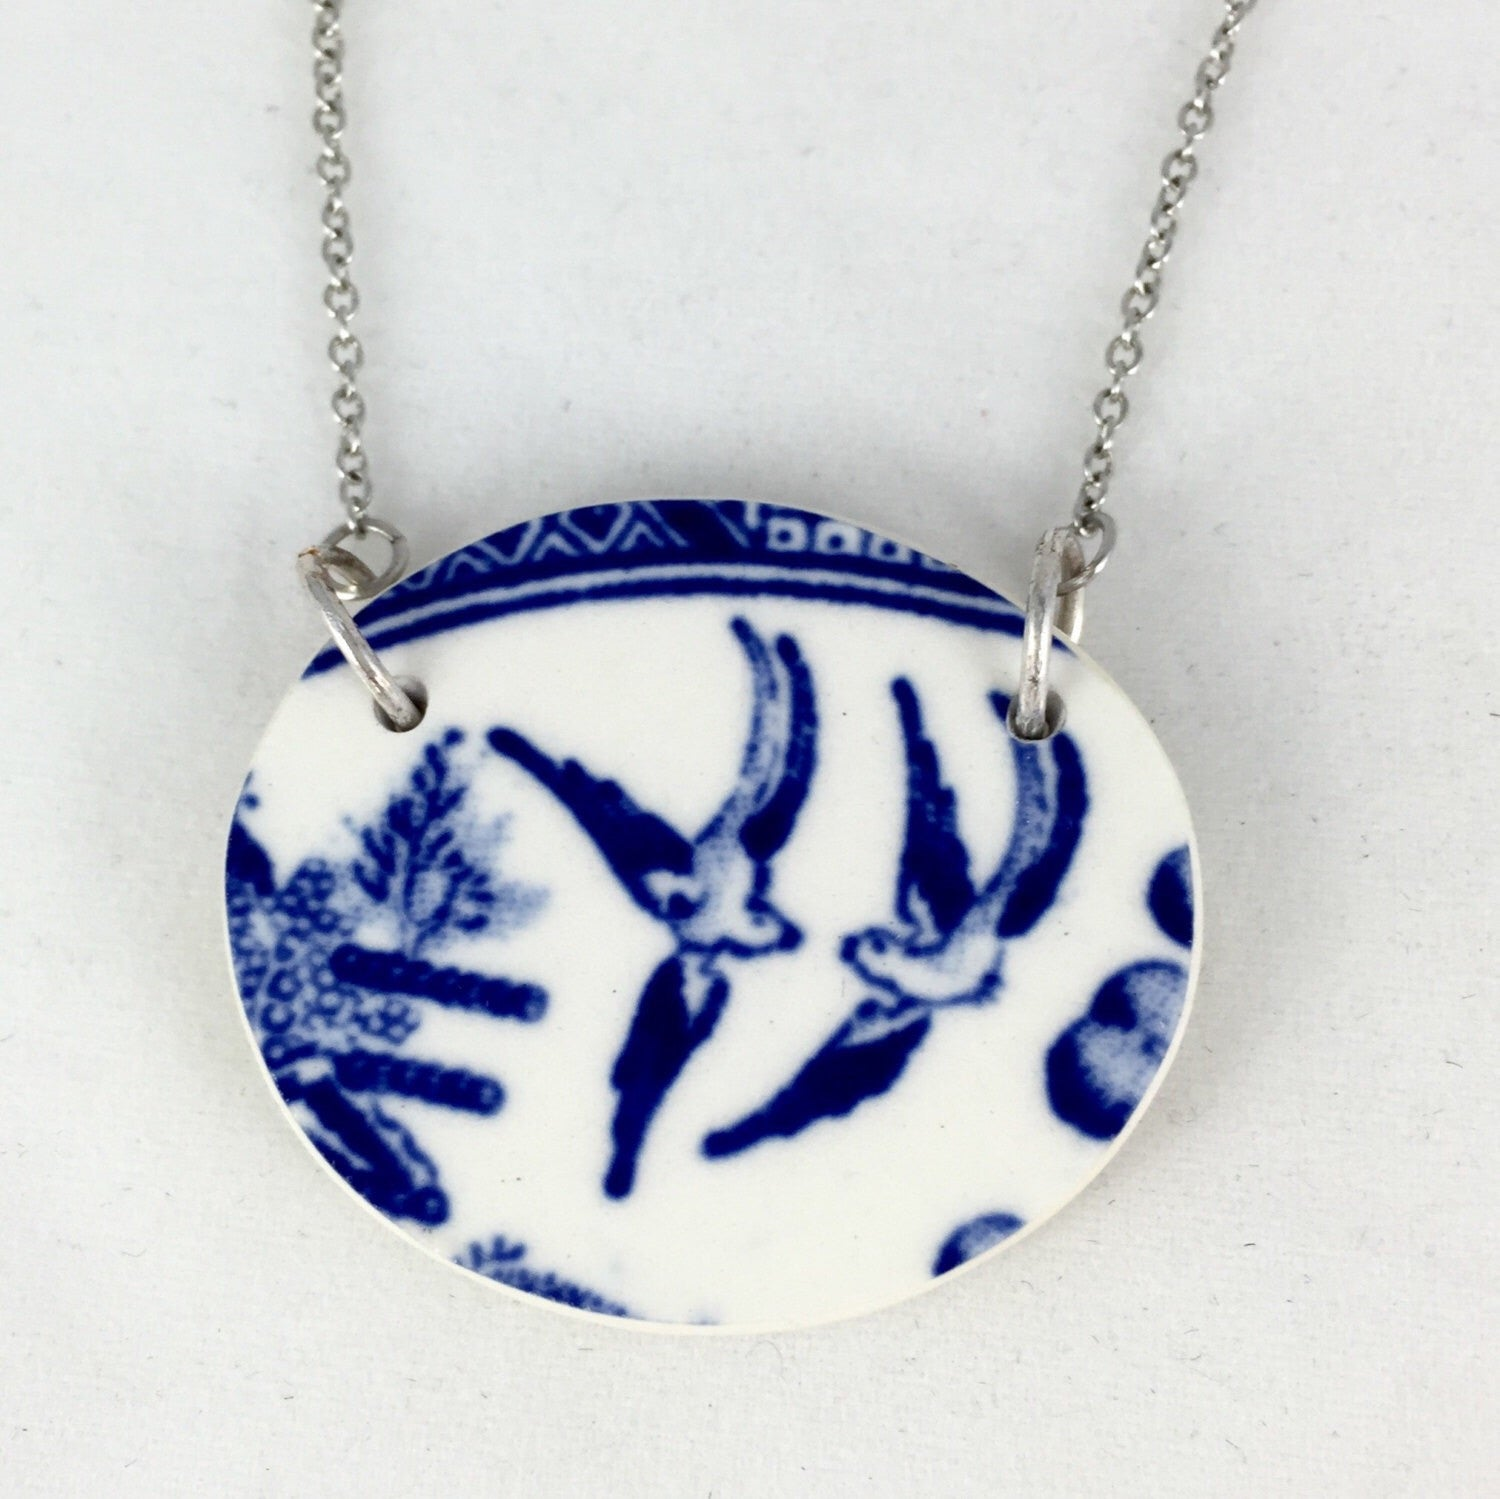 Necklace Broken China Jewelry Bird Necklace - Blue Willow Plate